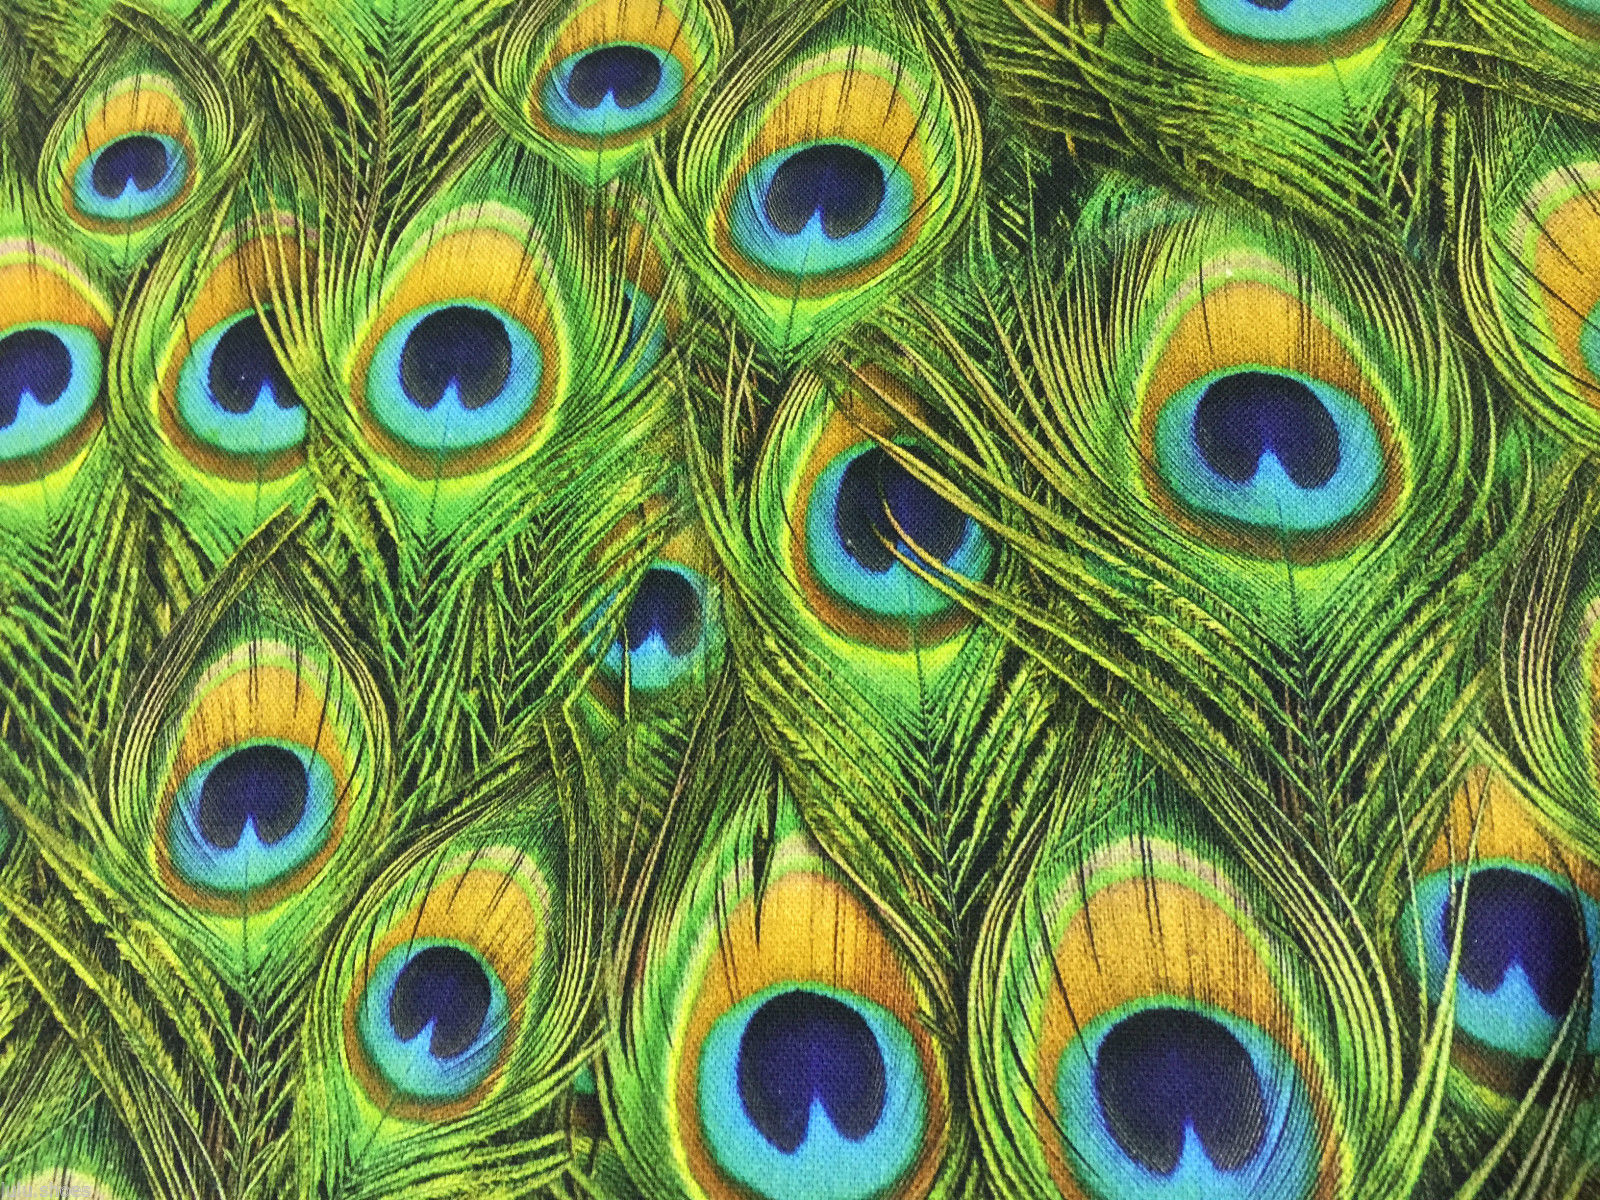 PEACOCK FEATHERS Curtain Upholstery Cotton Fabric Material - 140cm wide GREEN